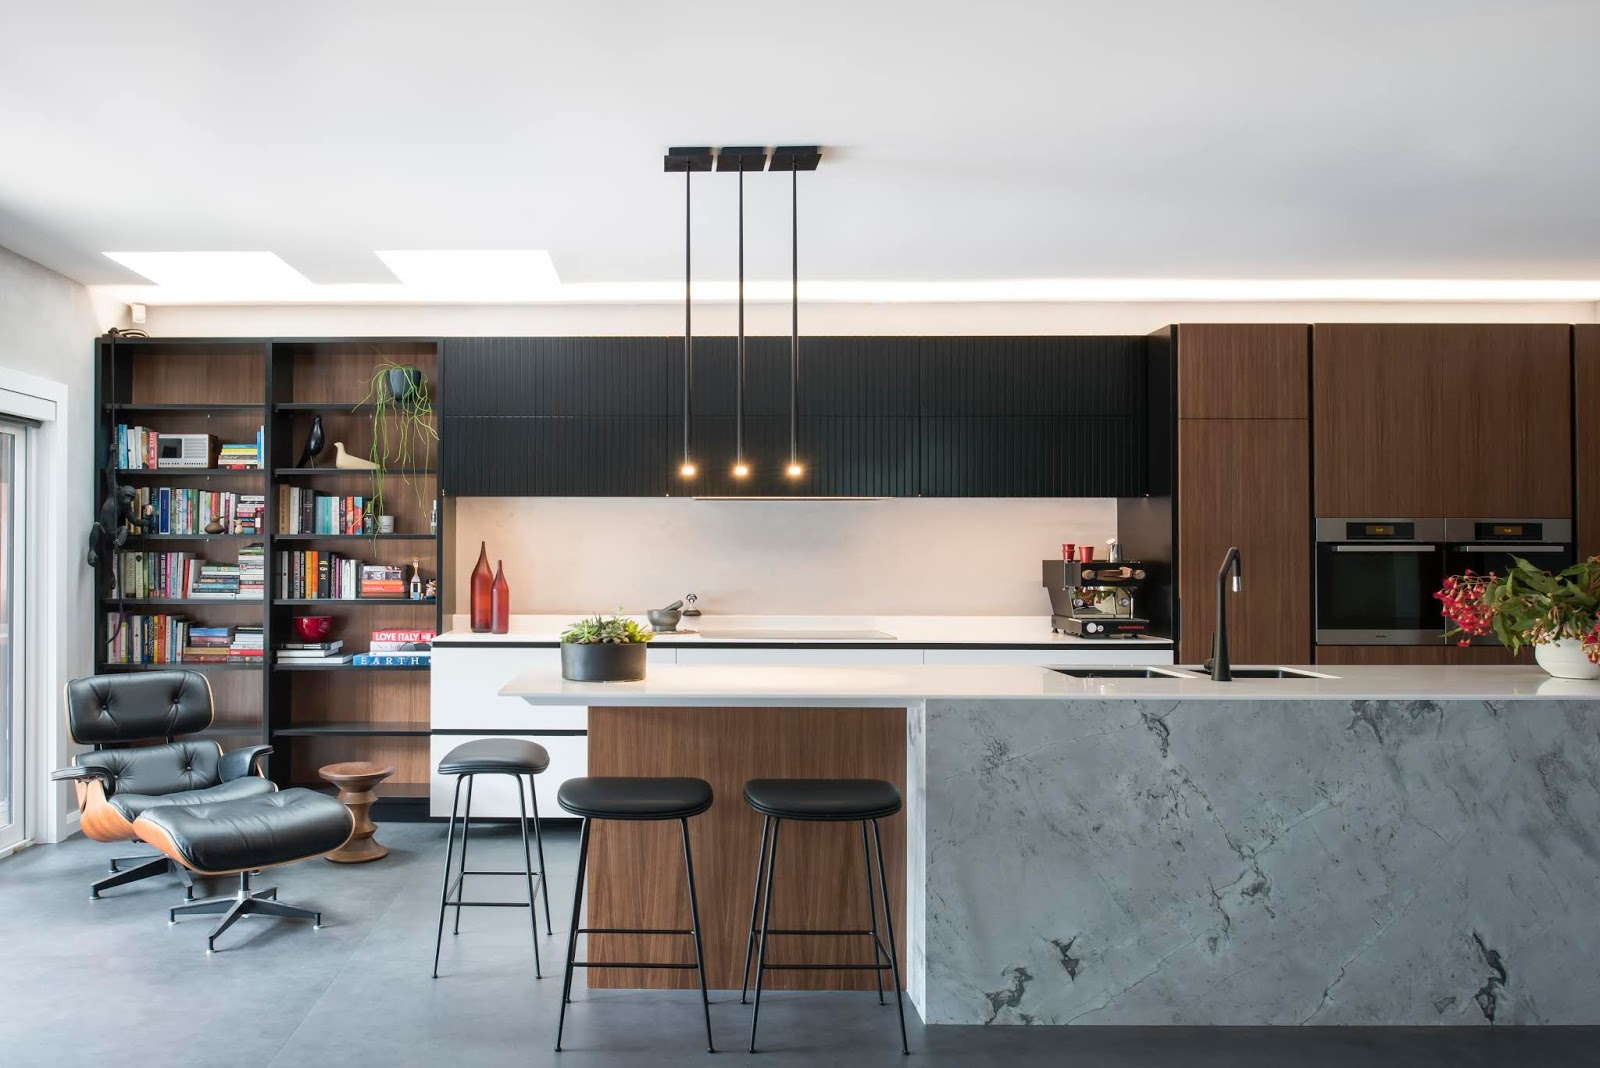 Modern Kitchen Design By Minosa Our Recent Willoughby Kitchen Design  Integrates The Living Room As One Space, Incorporating Dinning, Lounge,  Kitchen Reading ...